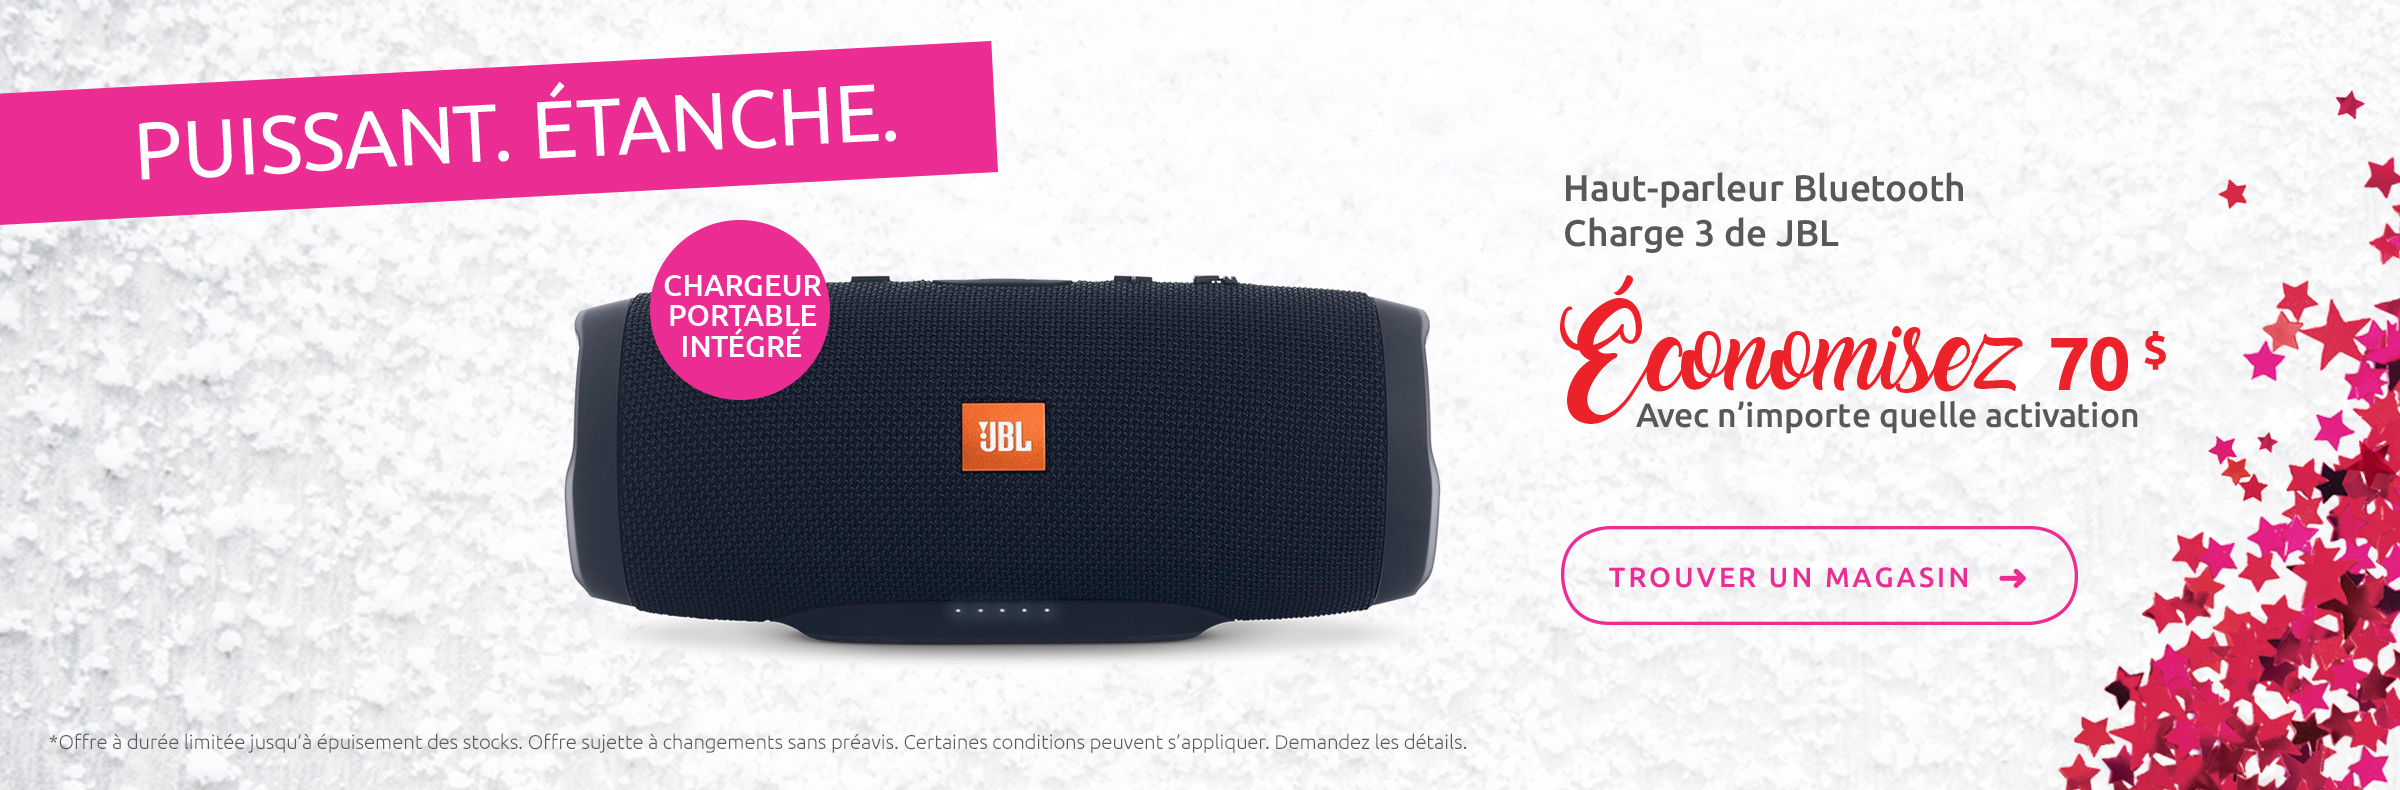 Haut-parleur Bluetooth Charge 3 de JBL